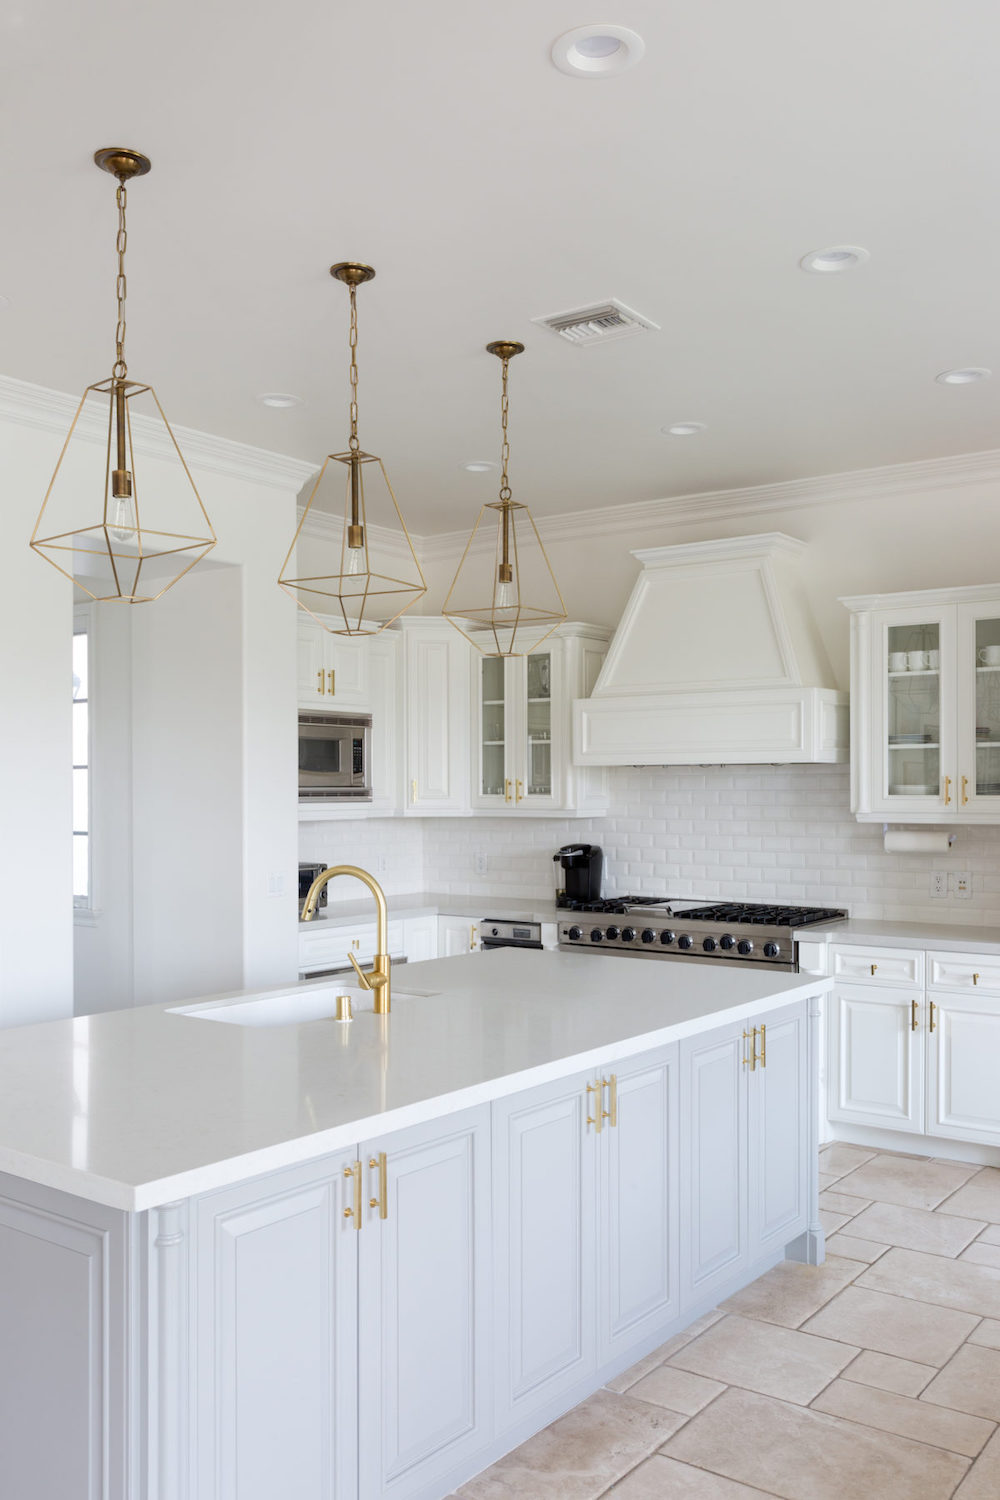 Brass Cage Lights In Kitchen With White Subway Tiling